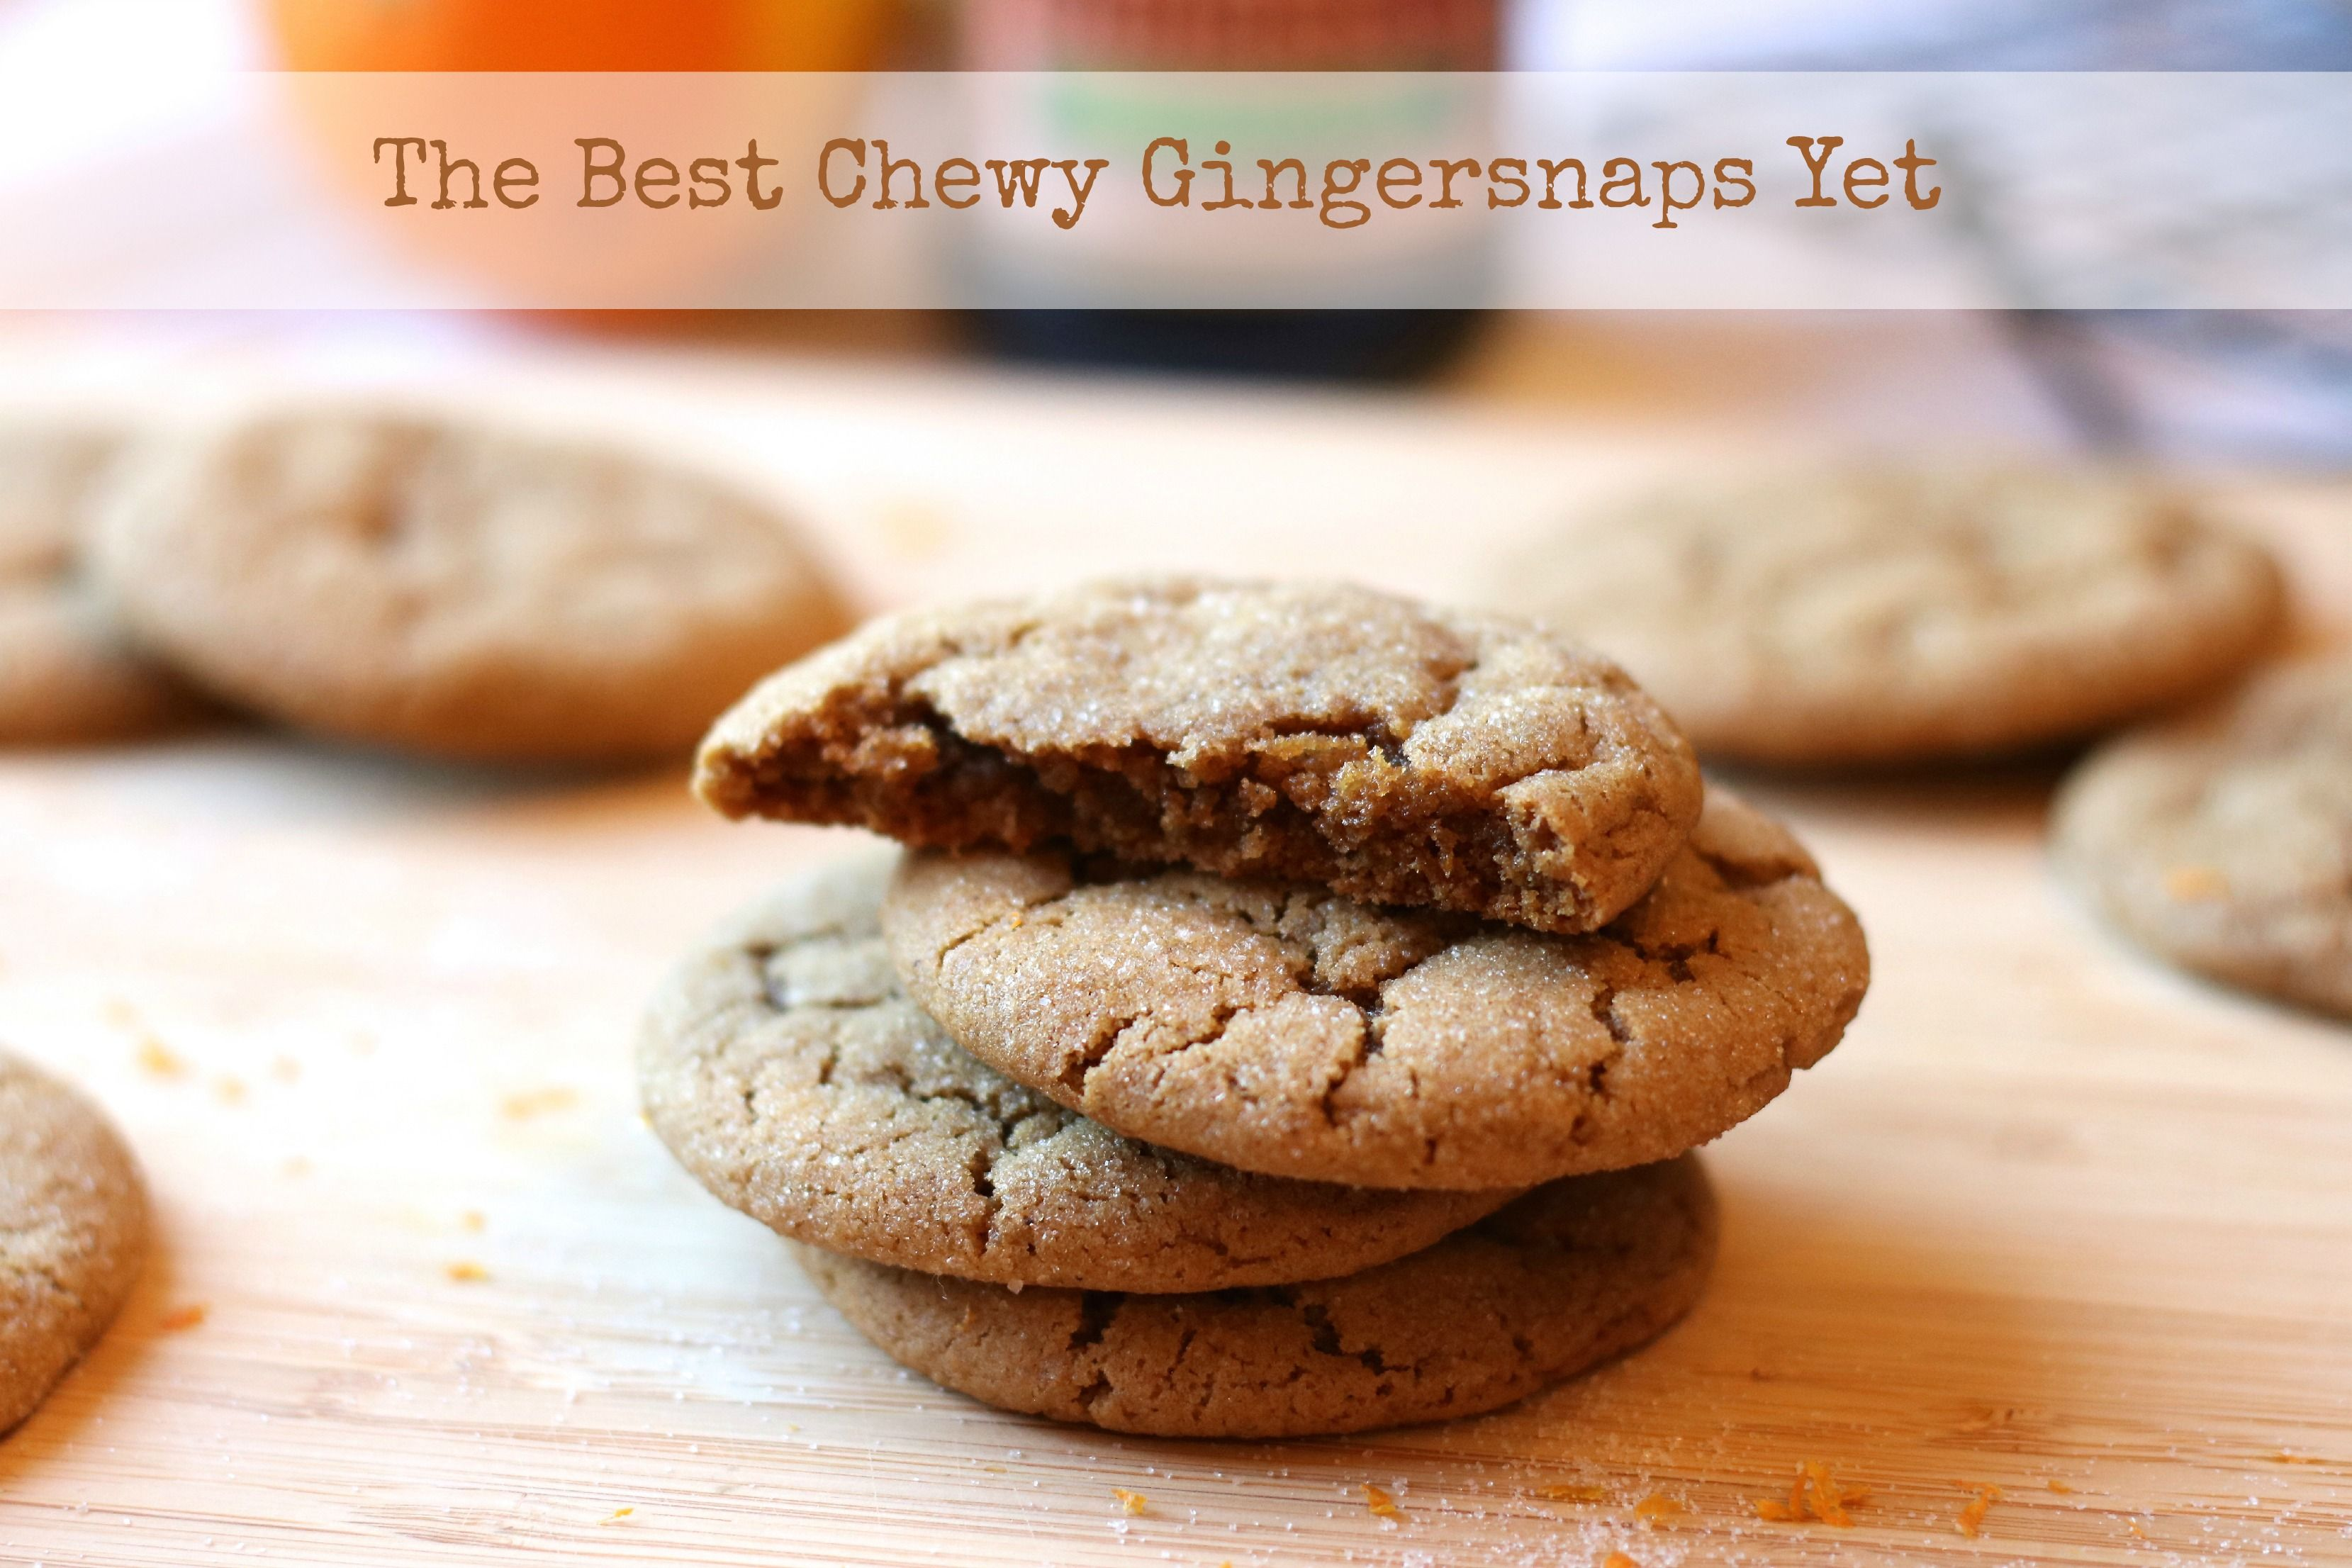 The Best Chewy Gingersnaps Yet! Chewy & Delicious for your holiday cookie baking. | rdinthemidwest.com